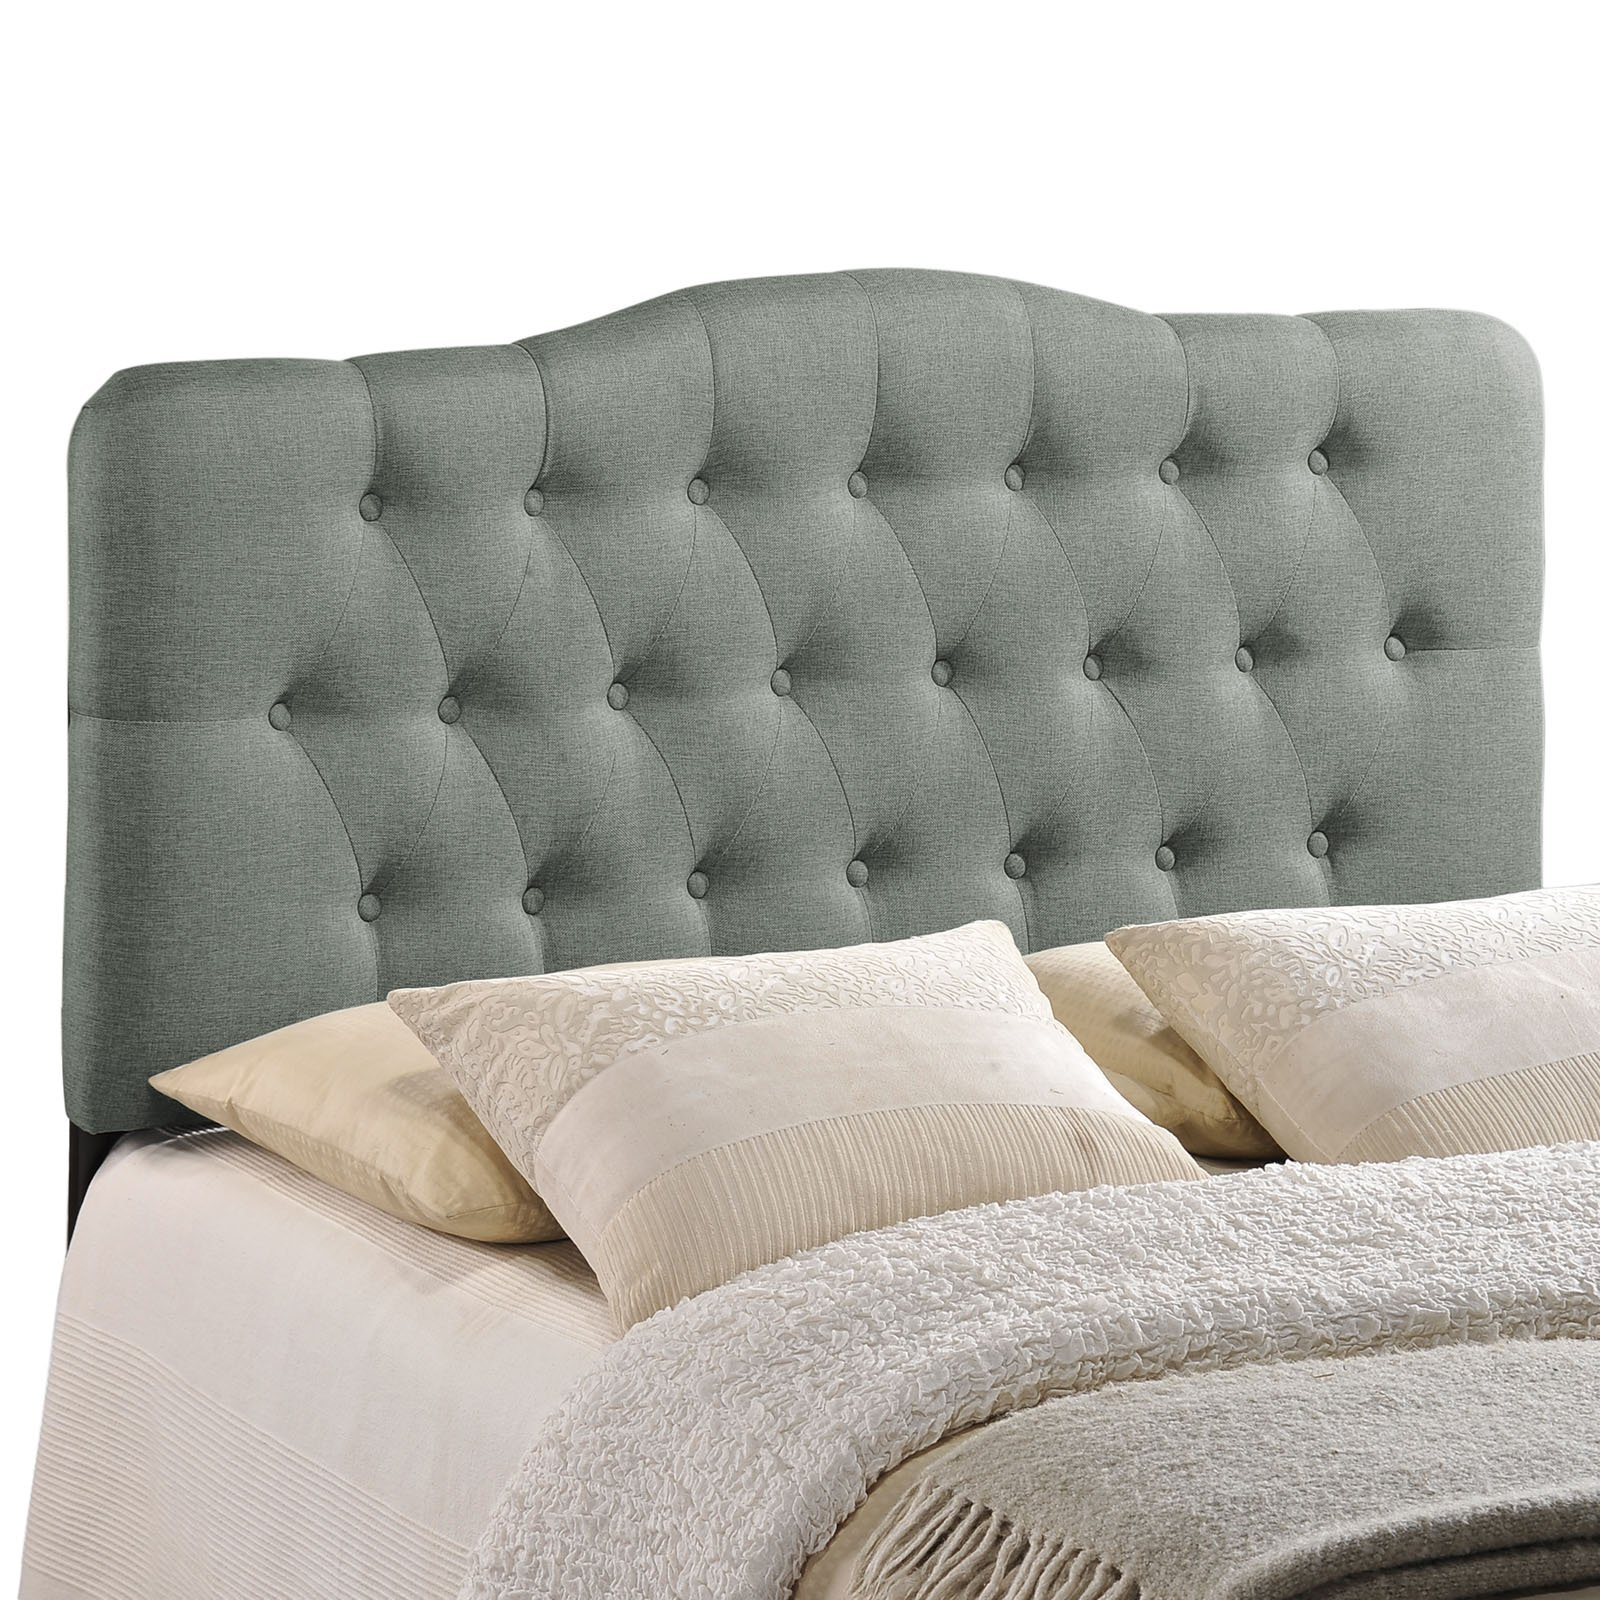 Modway Annabel Tufted Button Linen Fabric Upholstered King Headboard in Gray by Modway